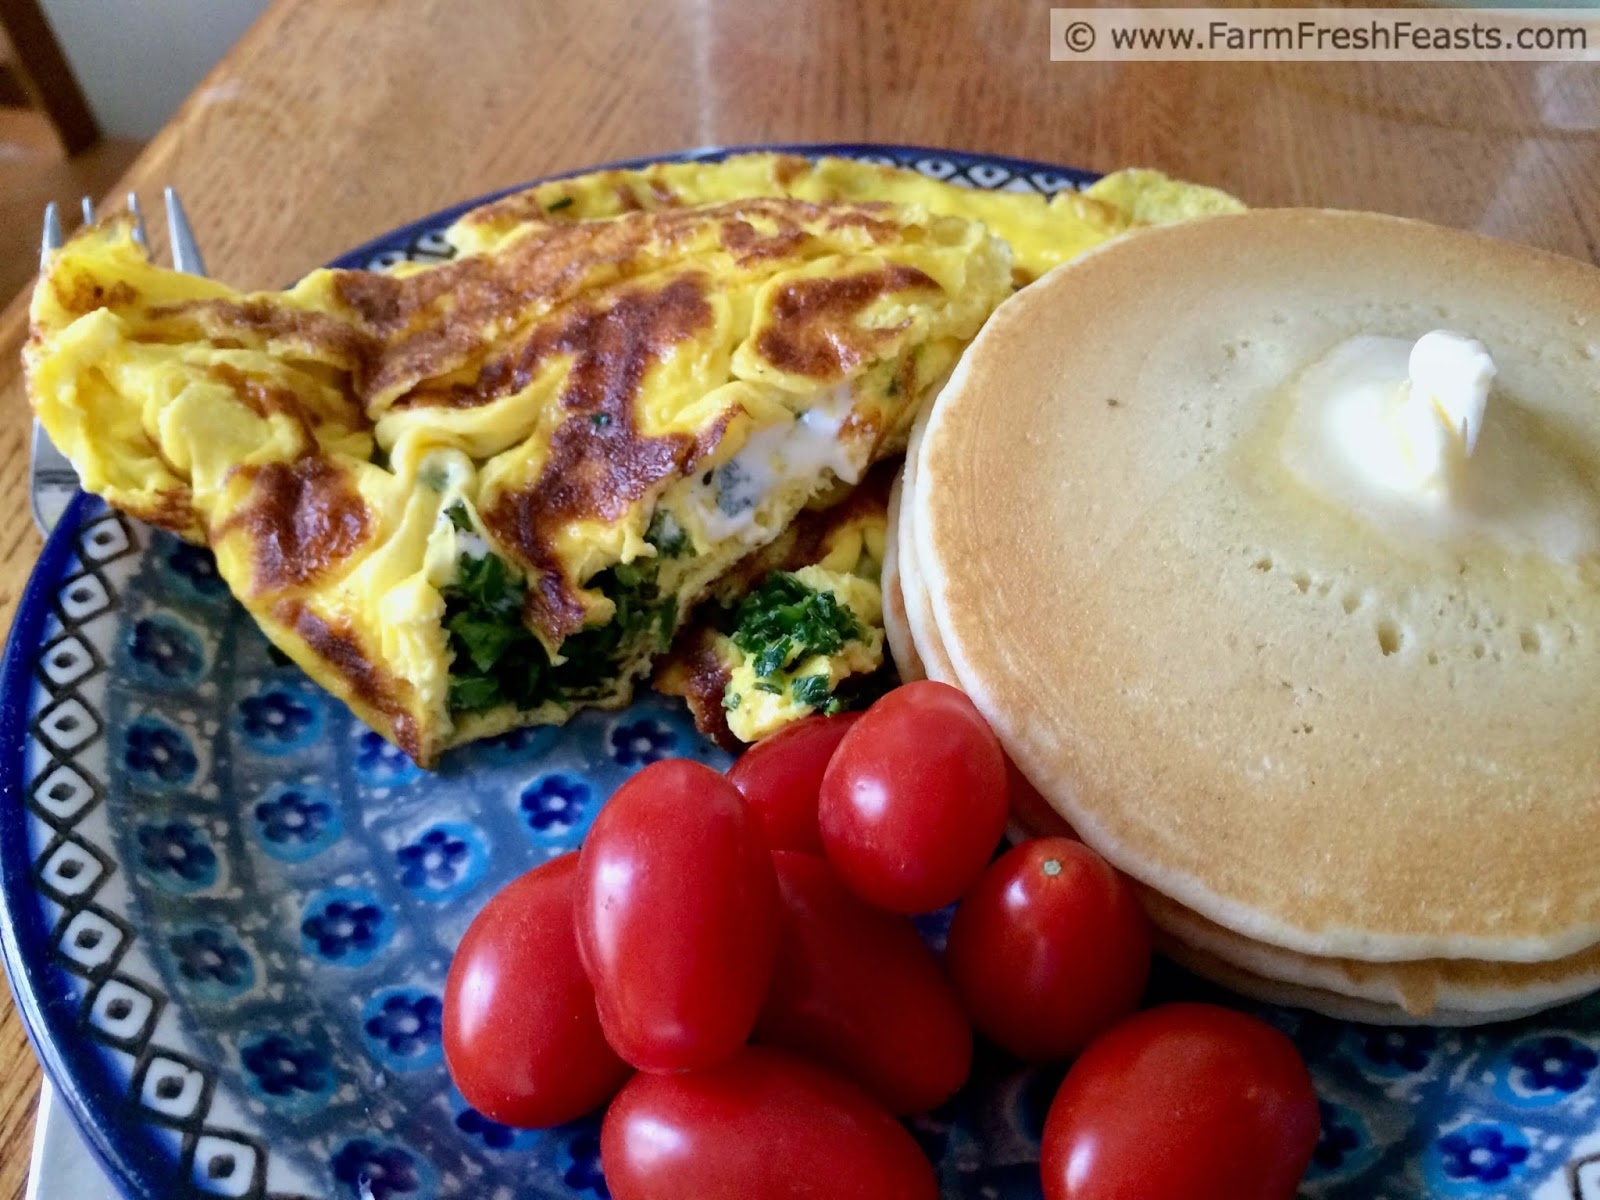 Garlic Scape and Goat Cheese Omelette